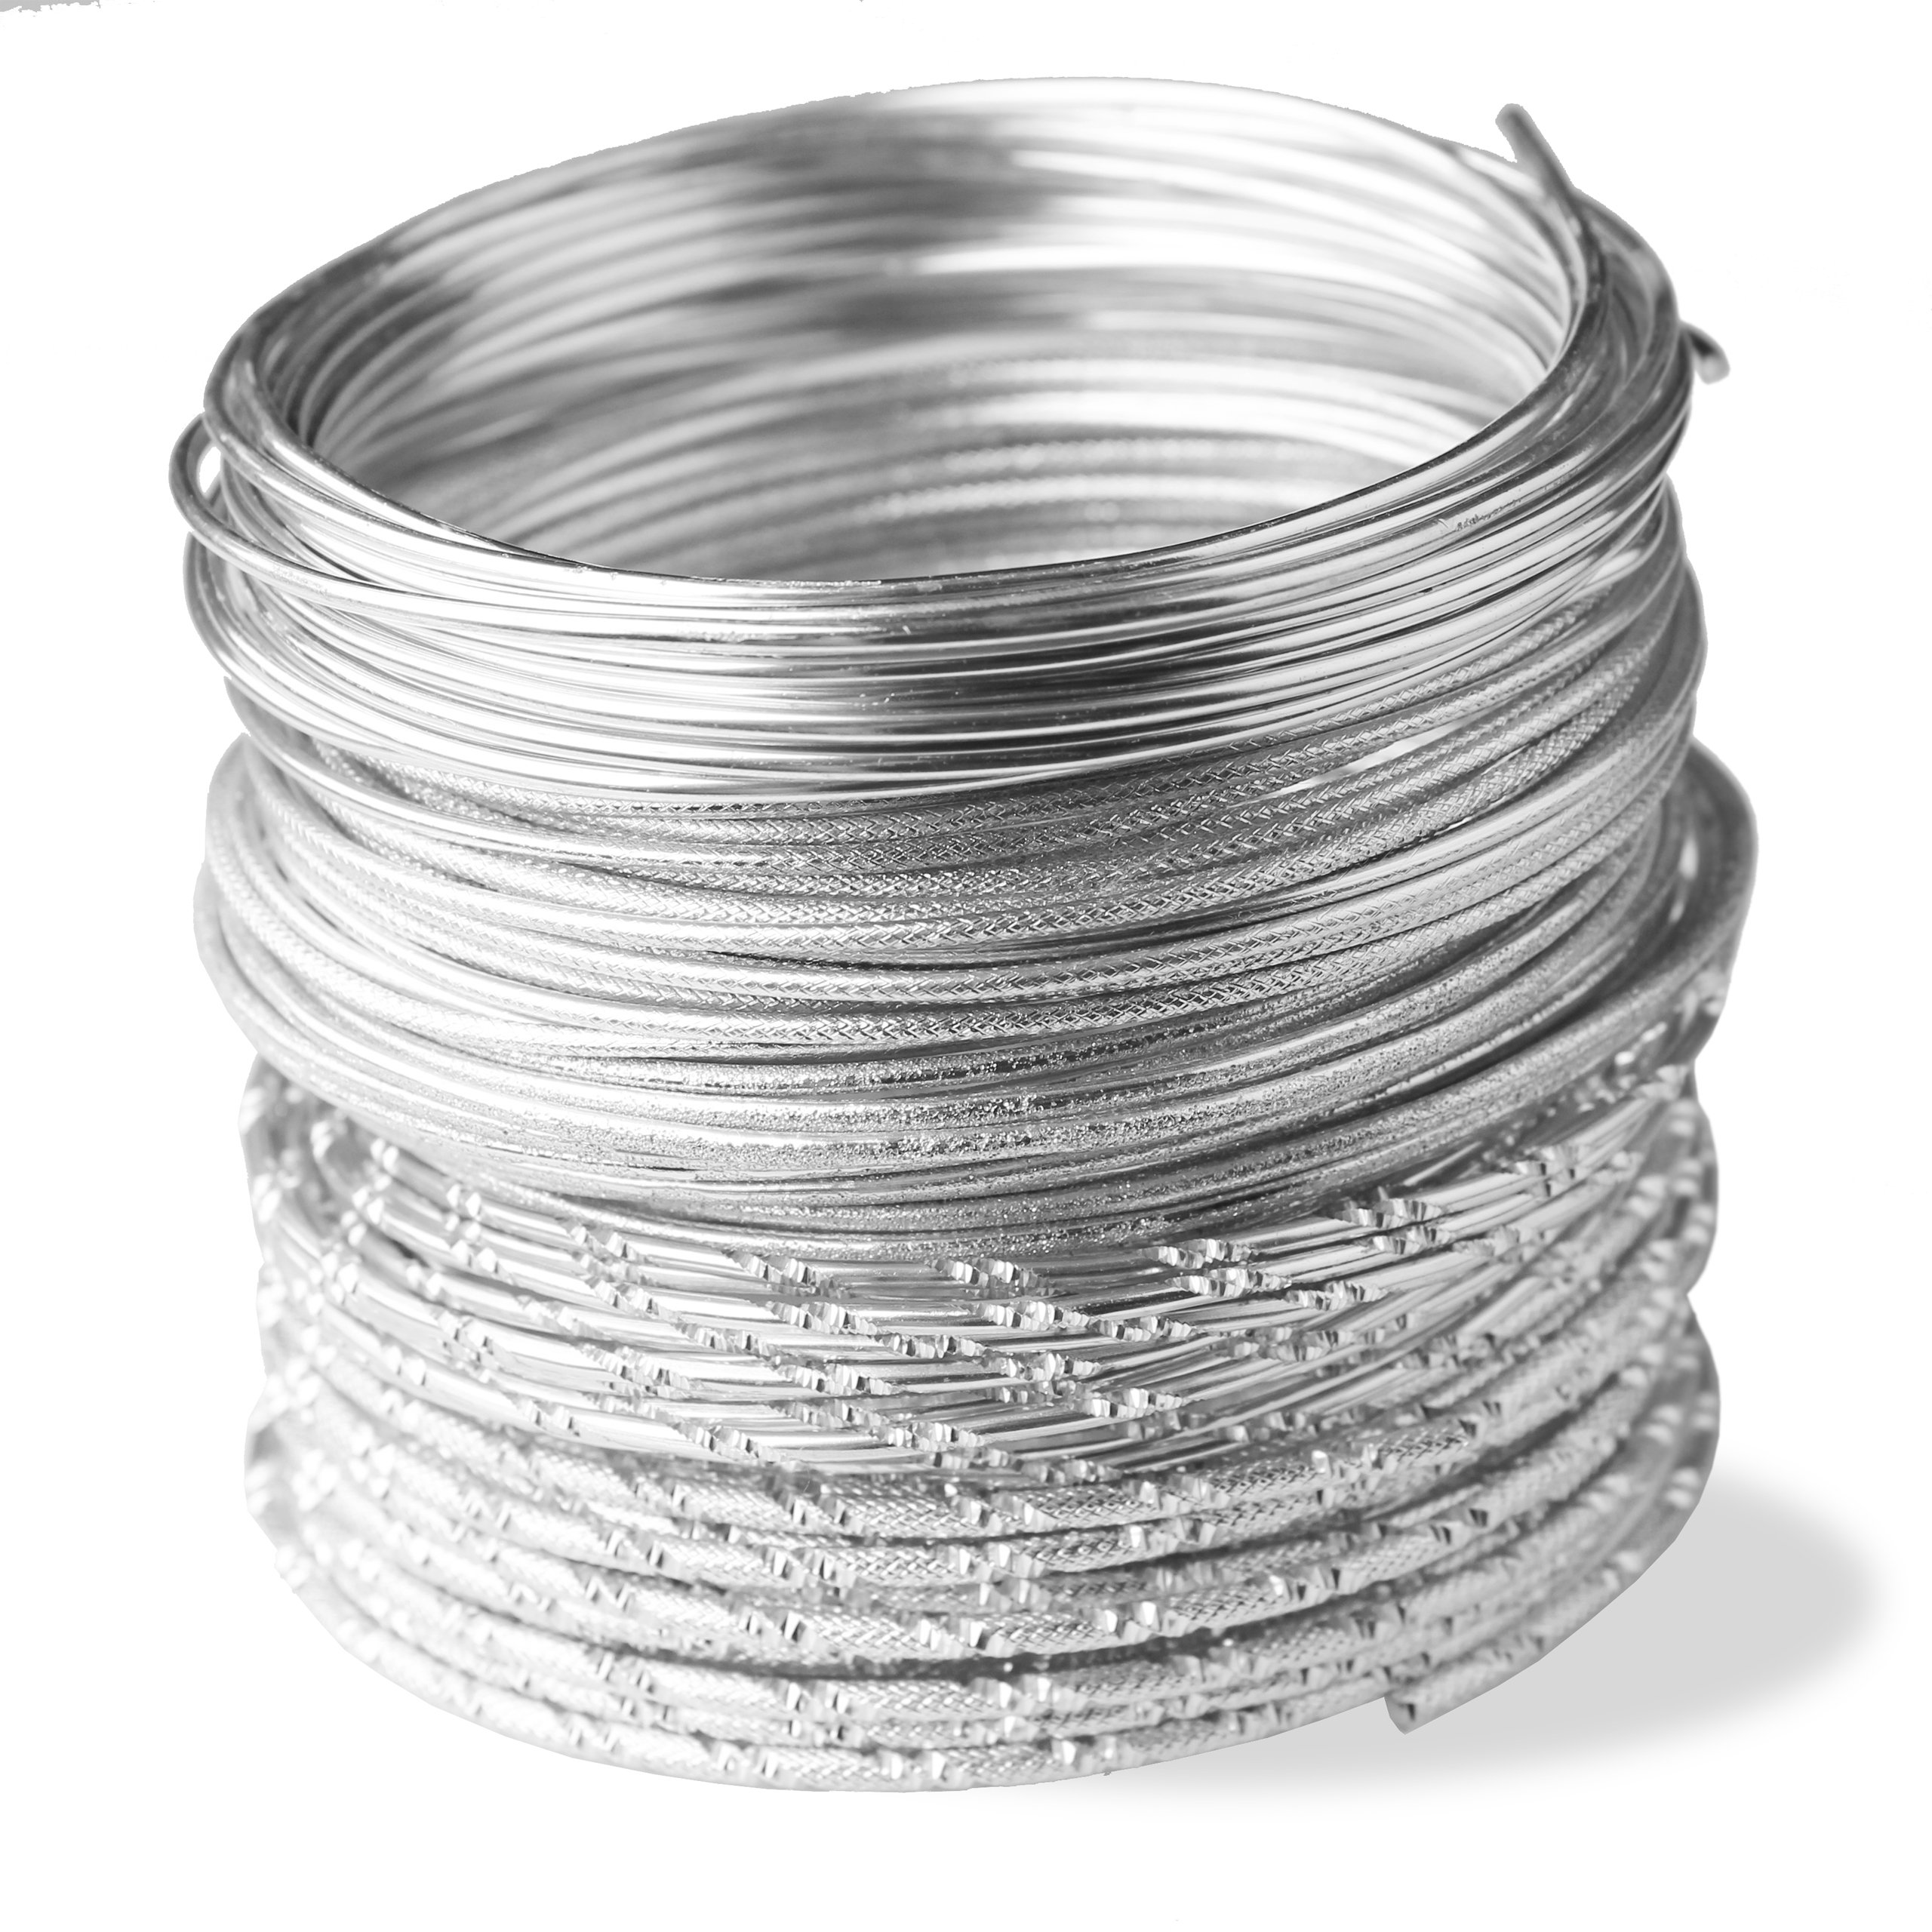 BEADING WIRE SILVER STYLE Set 5 Coils Of Artistic Aluminum Wire For ...